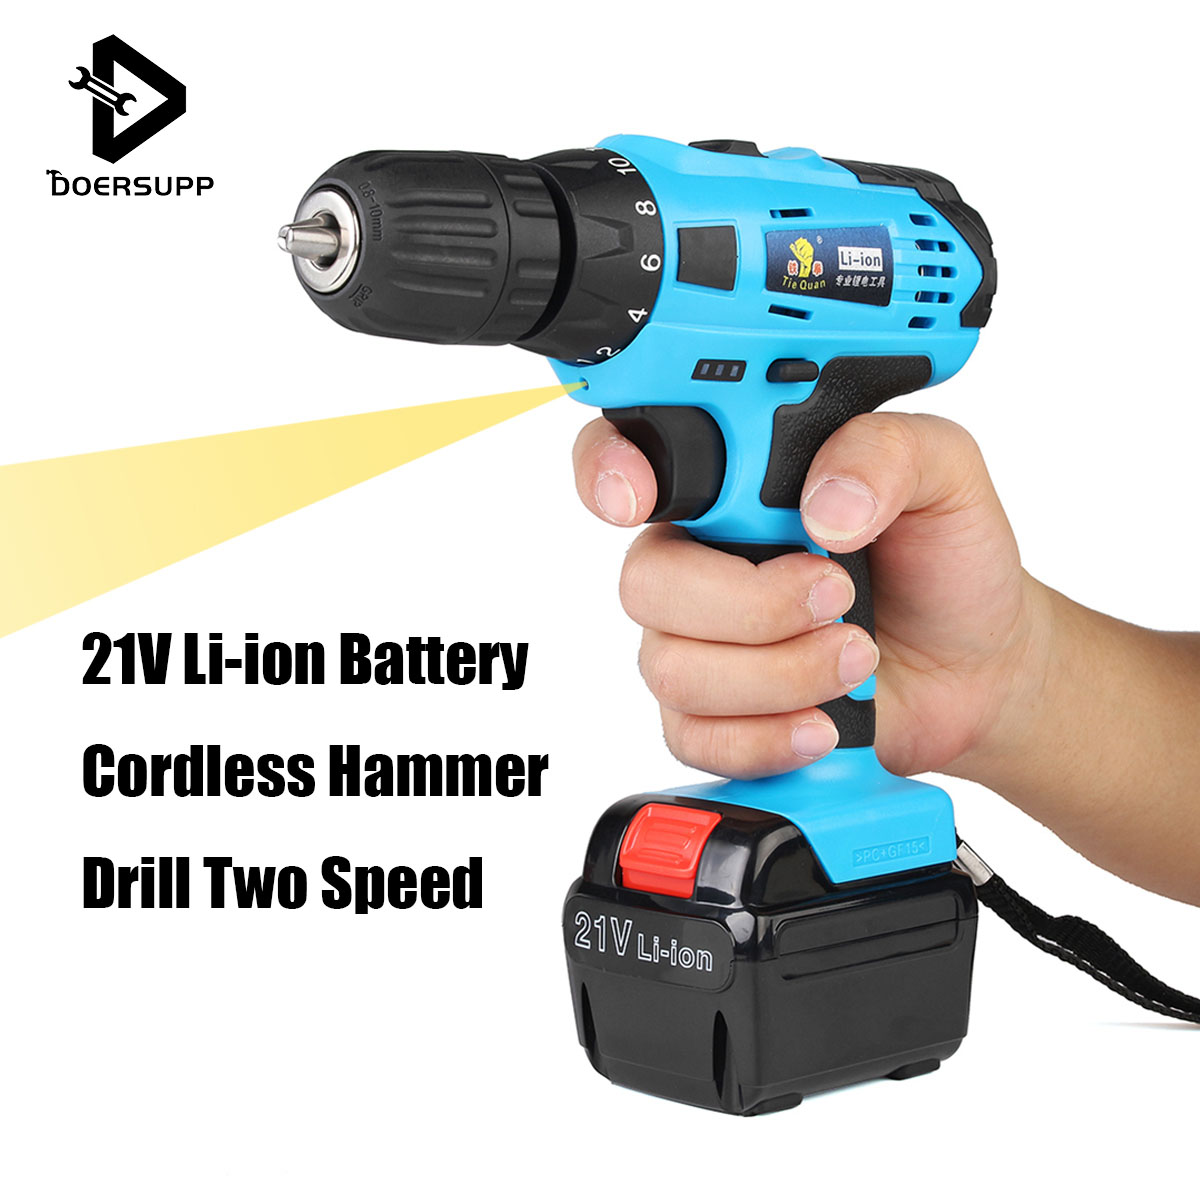 21V 1.5Ah Rechargeable Cordless Drill Li-ion Battery Electric Screwdriver 3/8 inch Cordless Drill Driver Power Tools Two Speed electric cordless drill 16 8v lithium ion dremel drill engraver electric drill power tools two speed rechargeable screwdriver